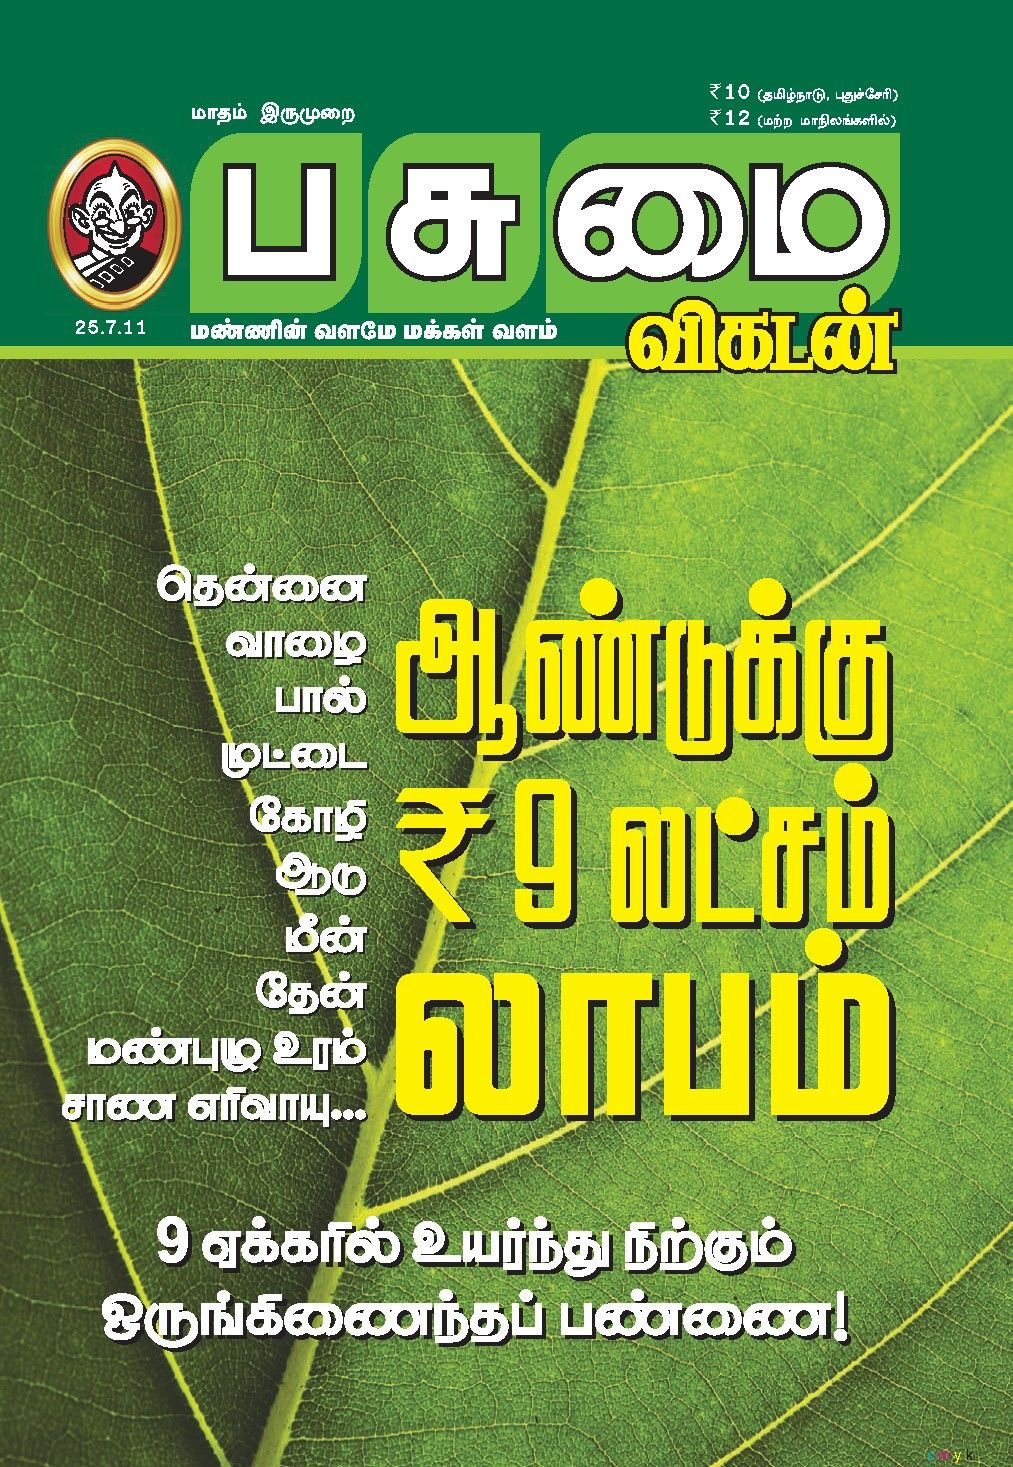 Pasumai Vikatan Tamil Magazine - Buy, Subscribe, Download and Read Pasumai Vikatan on your iPad, iPhone, iPod Touch, Android and on the web only through Magzter